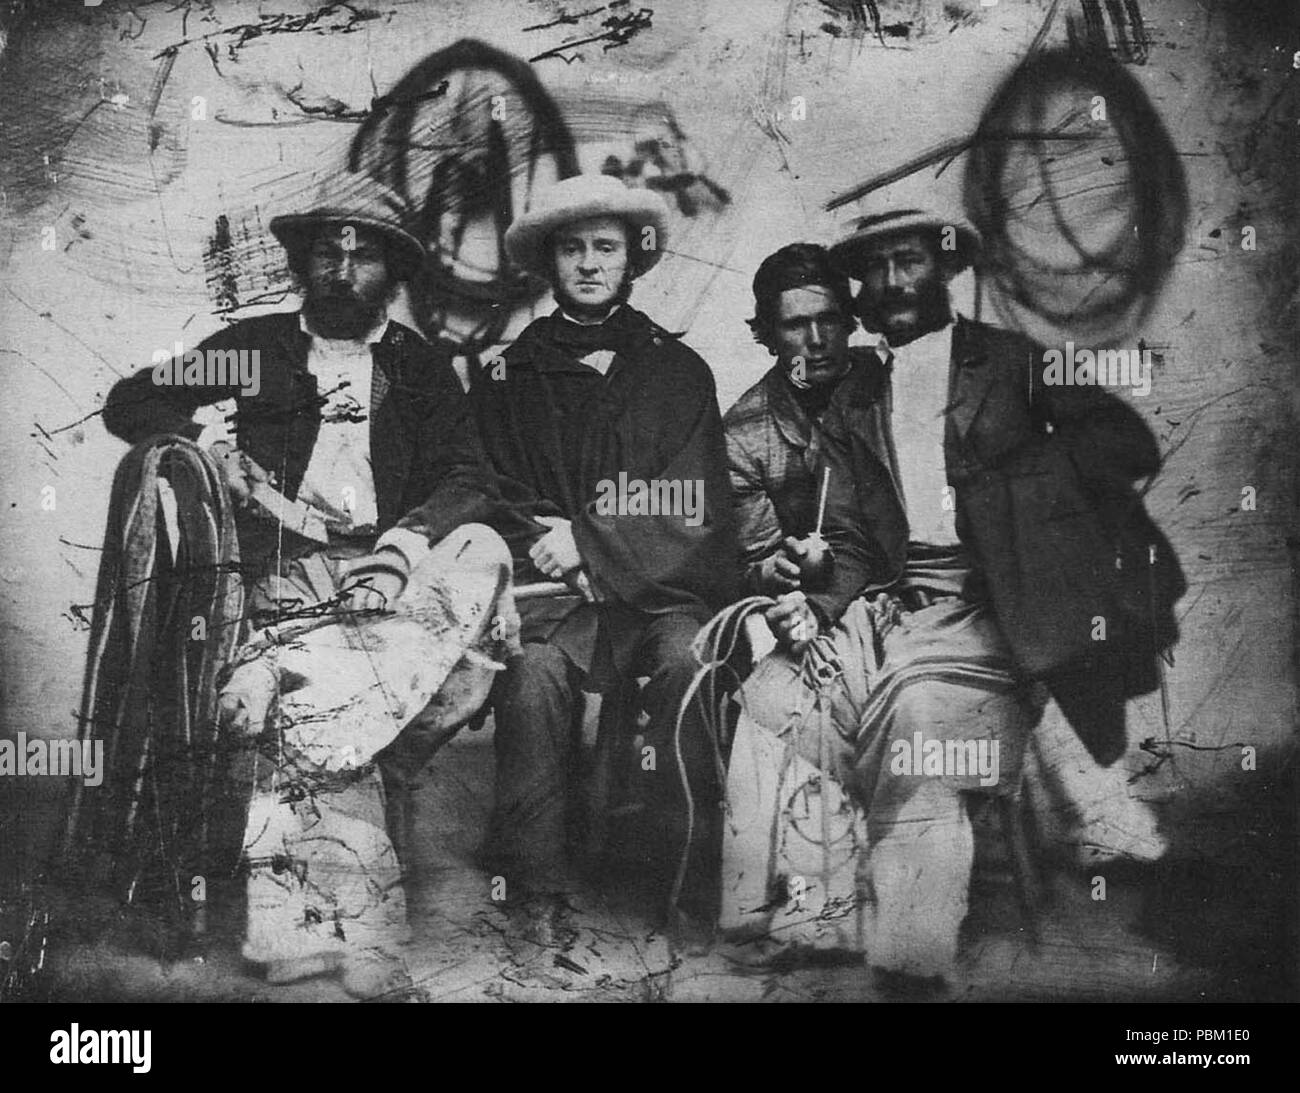 765 Hombres campo buenos aires 1860 - Stock Image